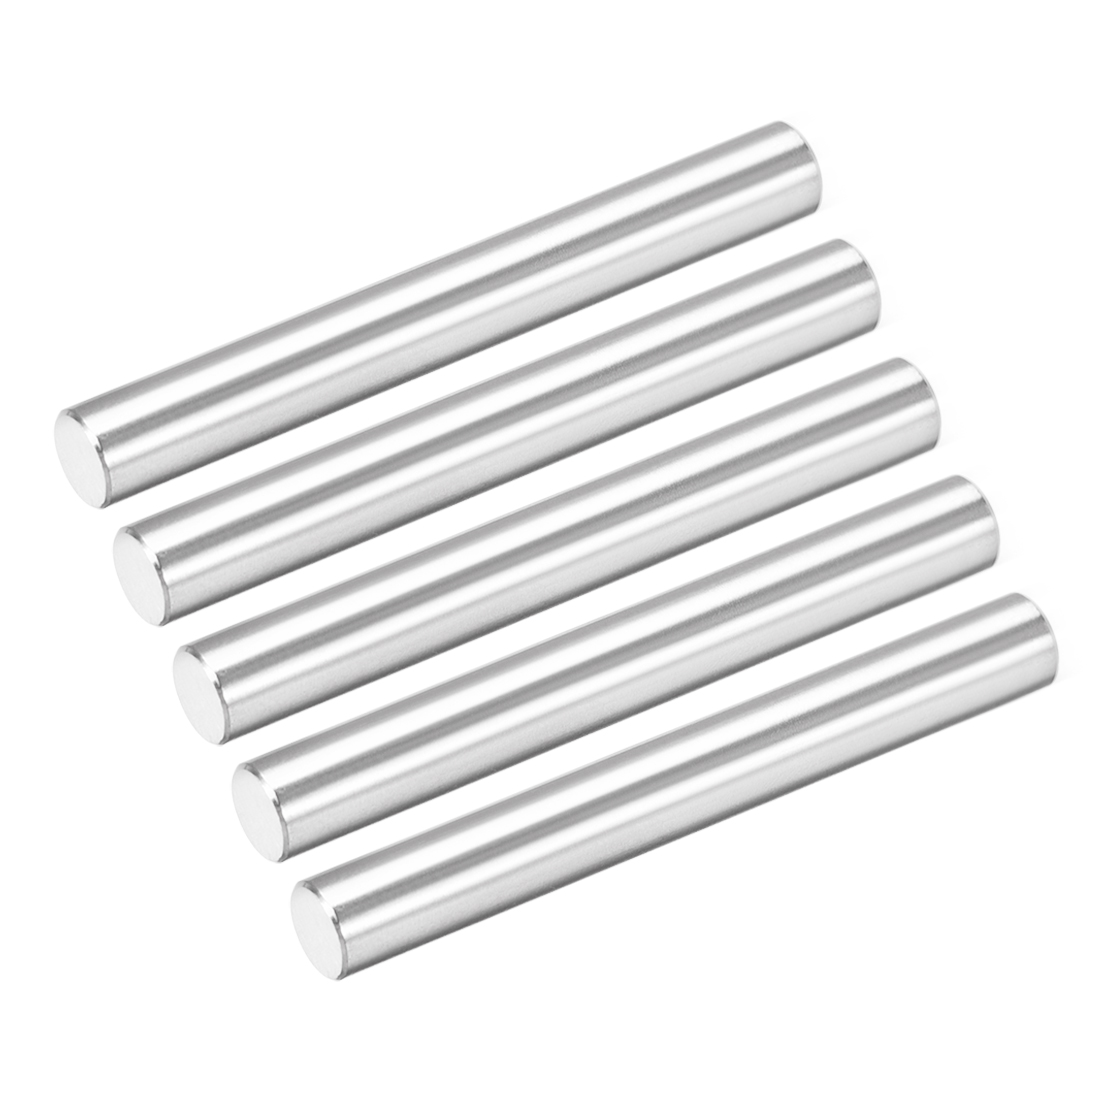 Uxcell 5Pcs 6mm X 50mm Dowel Pin 304 Stainless Steel Cylindrical Shelf Support Pin